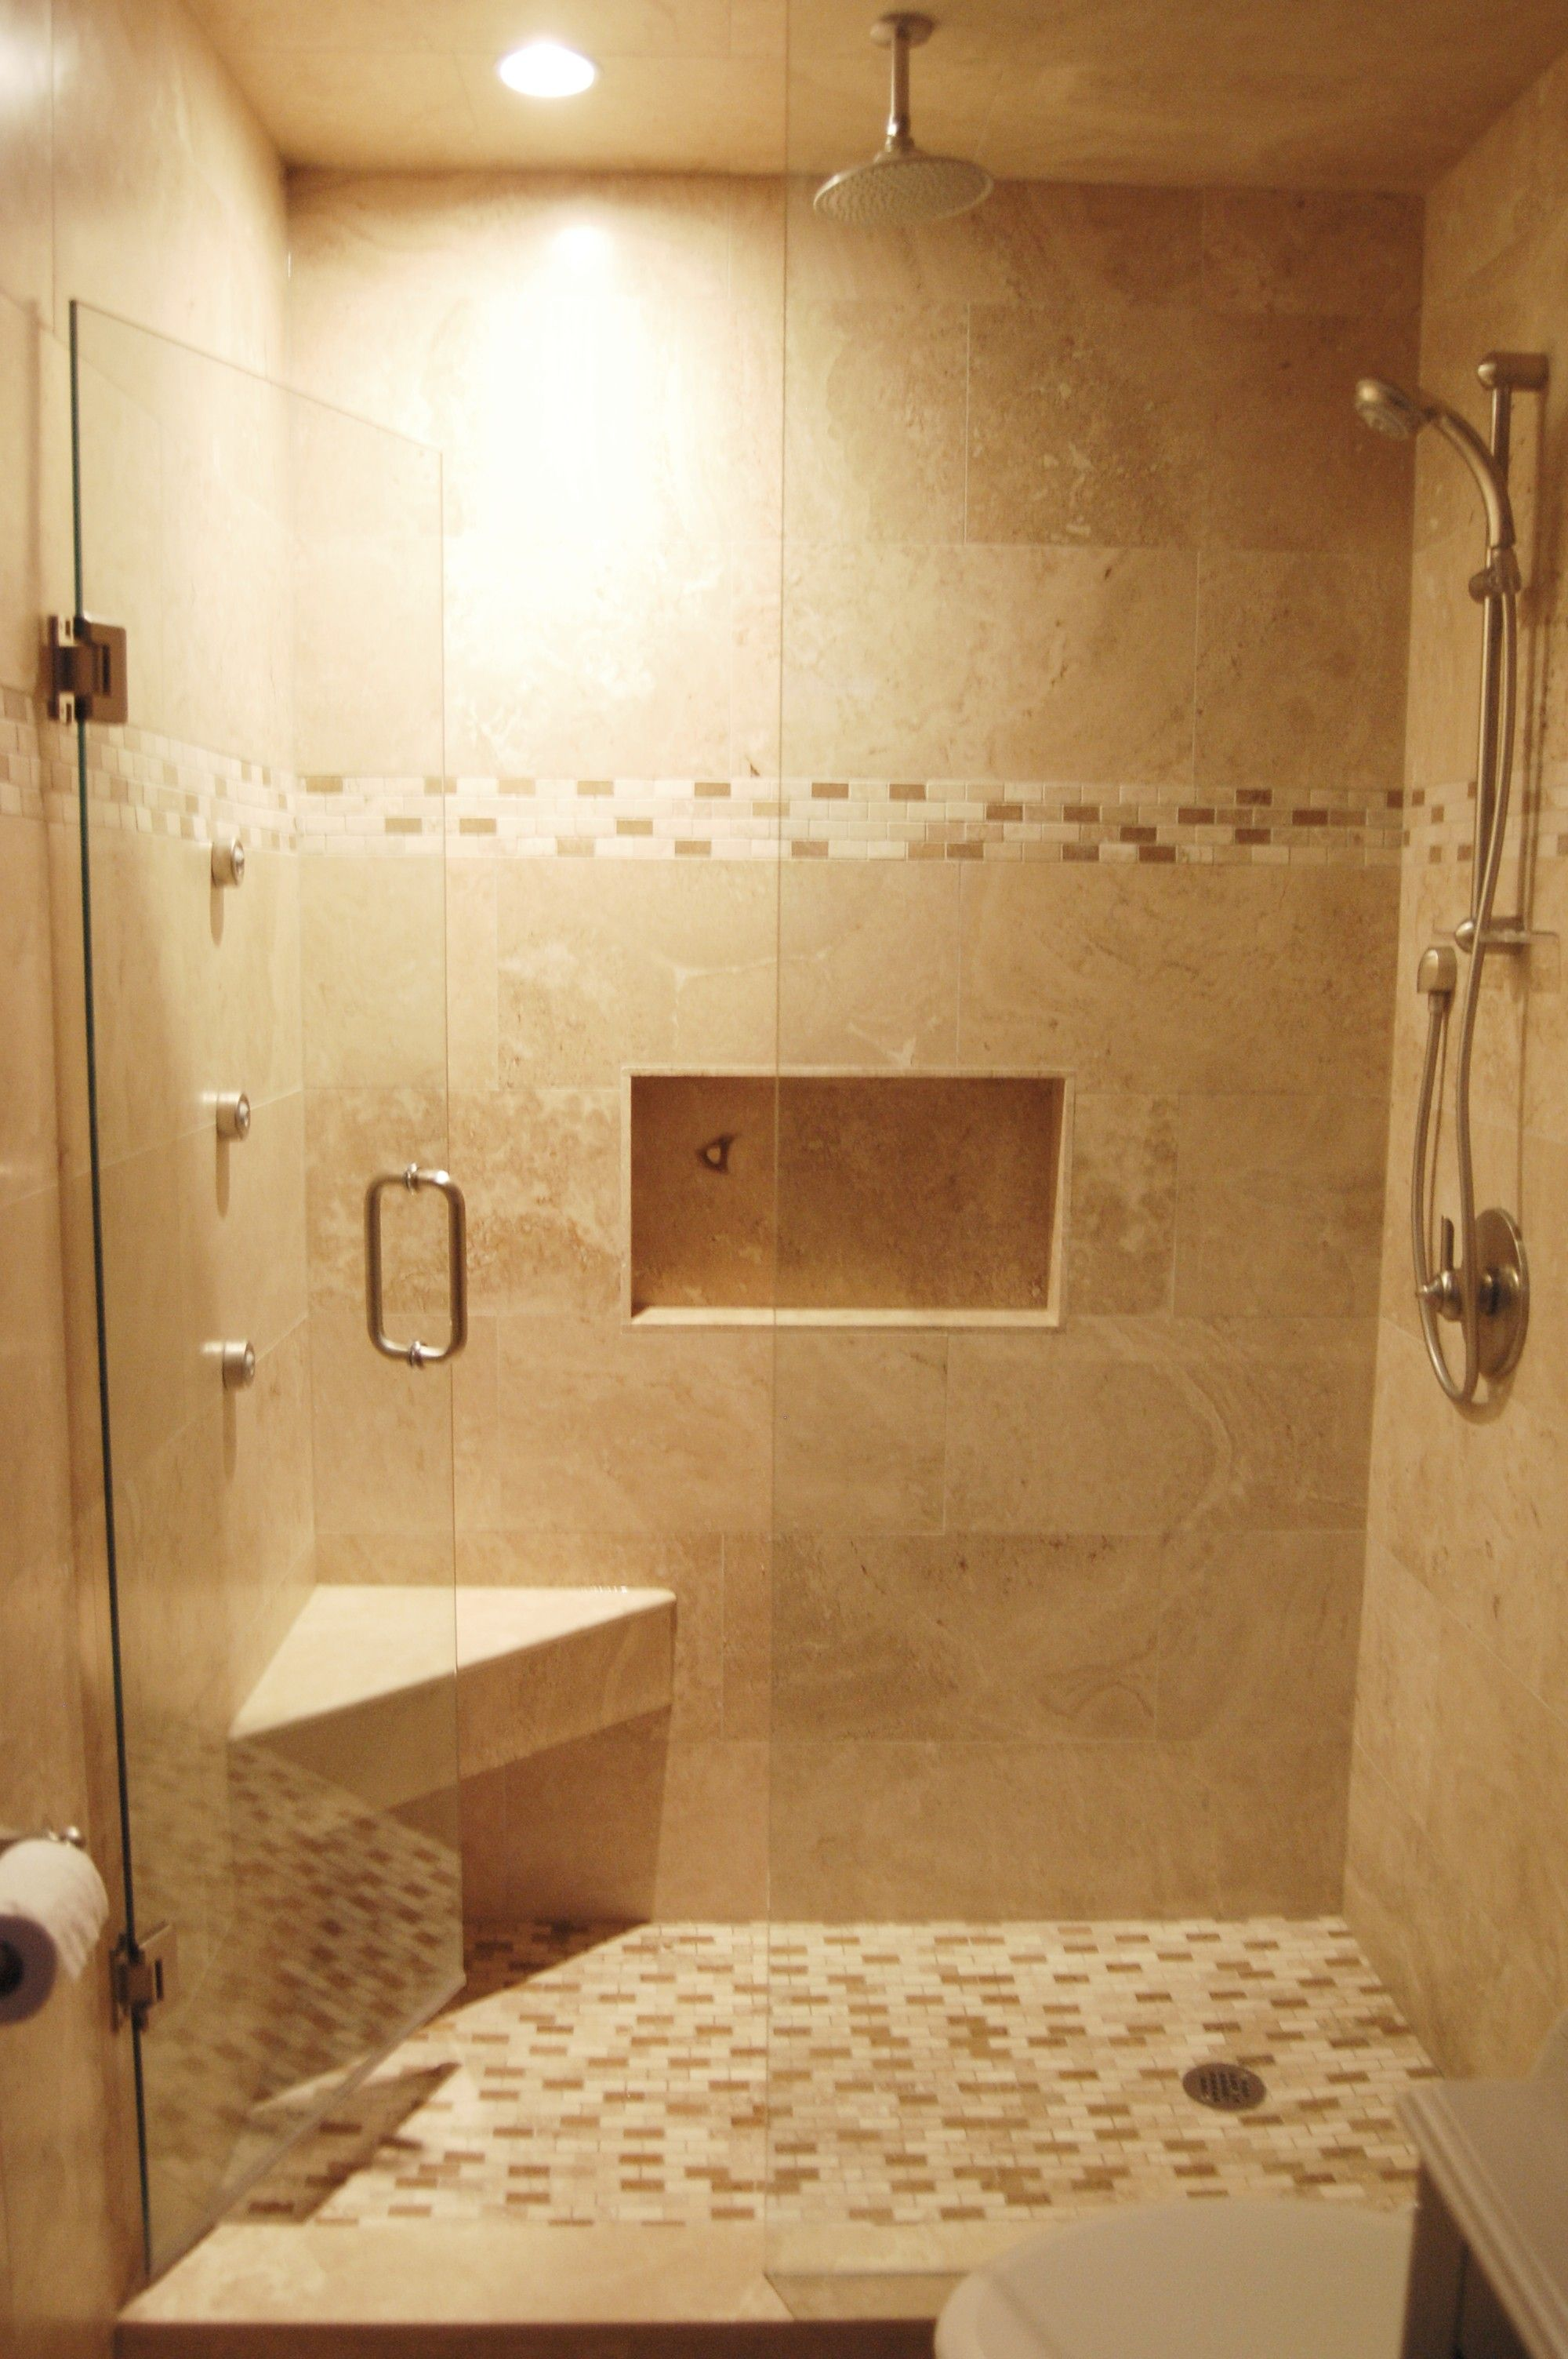 Renovate Into the Future: Keep the Tub or Convert to Shower ...